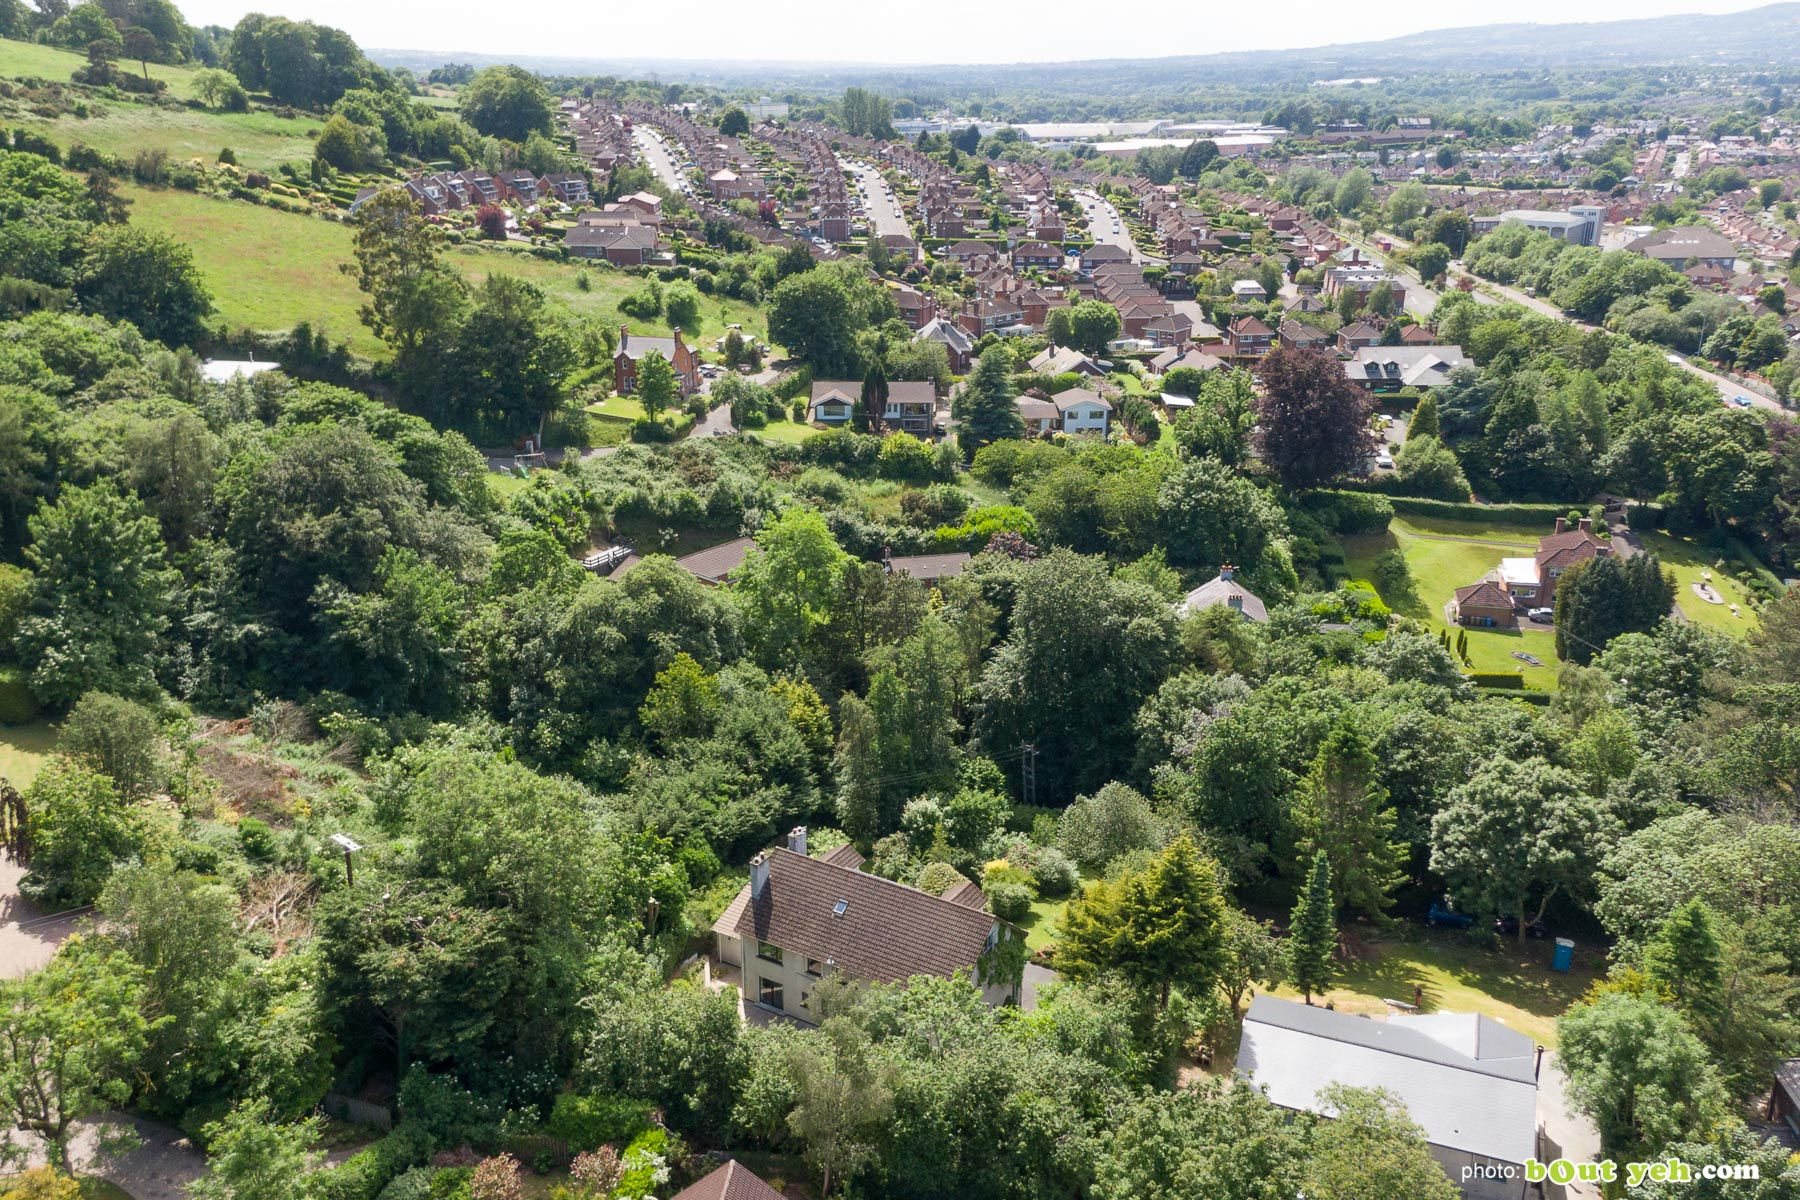 Aerial photo of 2 Glenside, for Templeton Robinson Estate Agents - drone photography and video by Bout Yeh photographers Belfast. Photo 0013